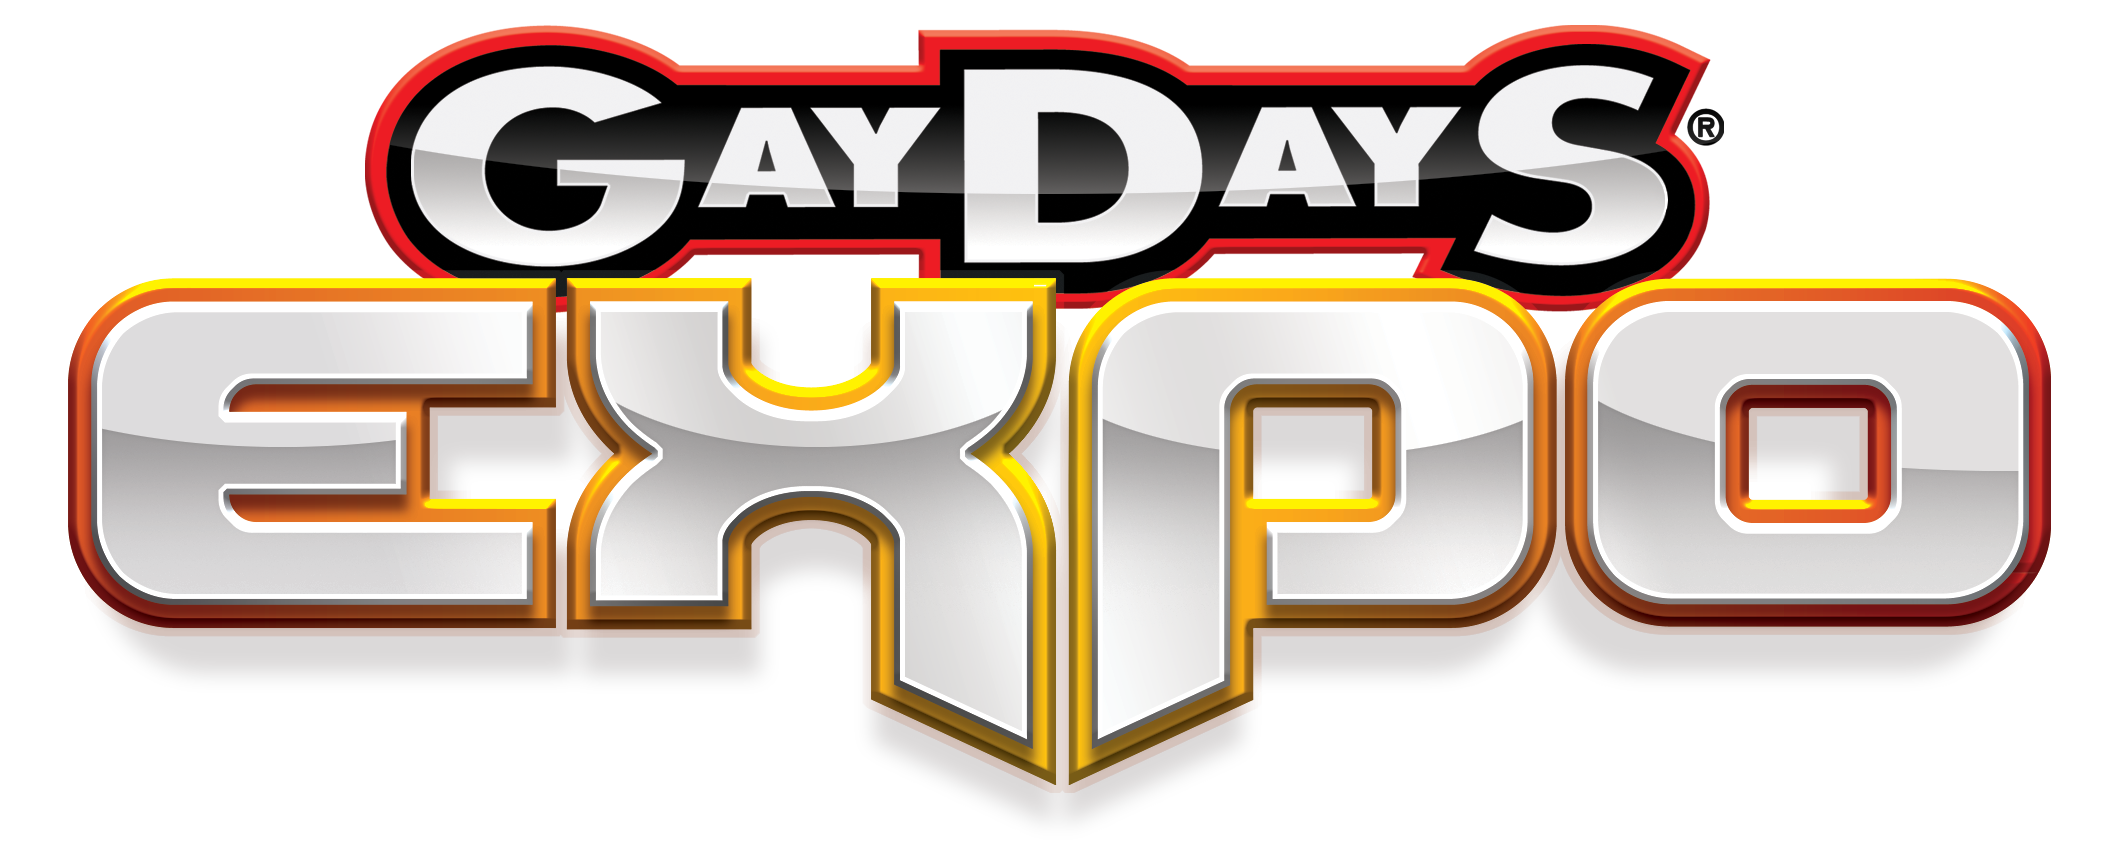 Gay Days EXPO Logo copy